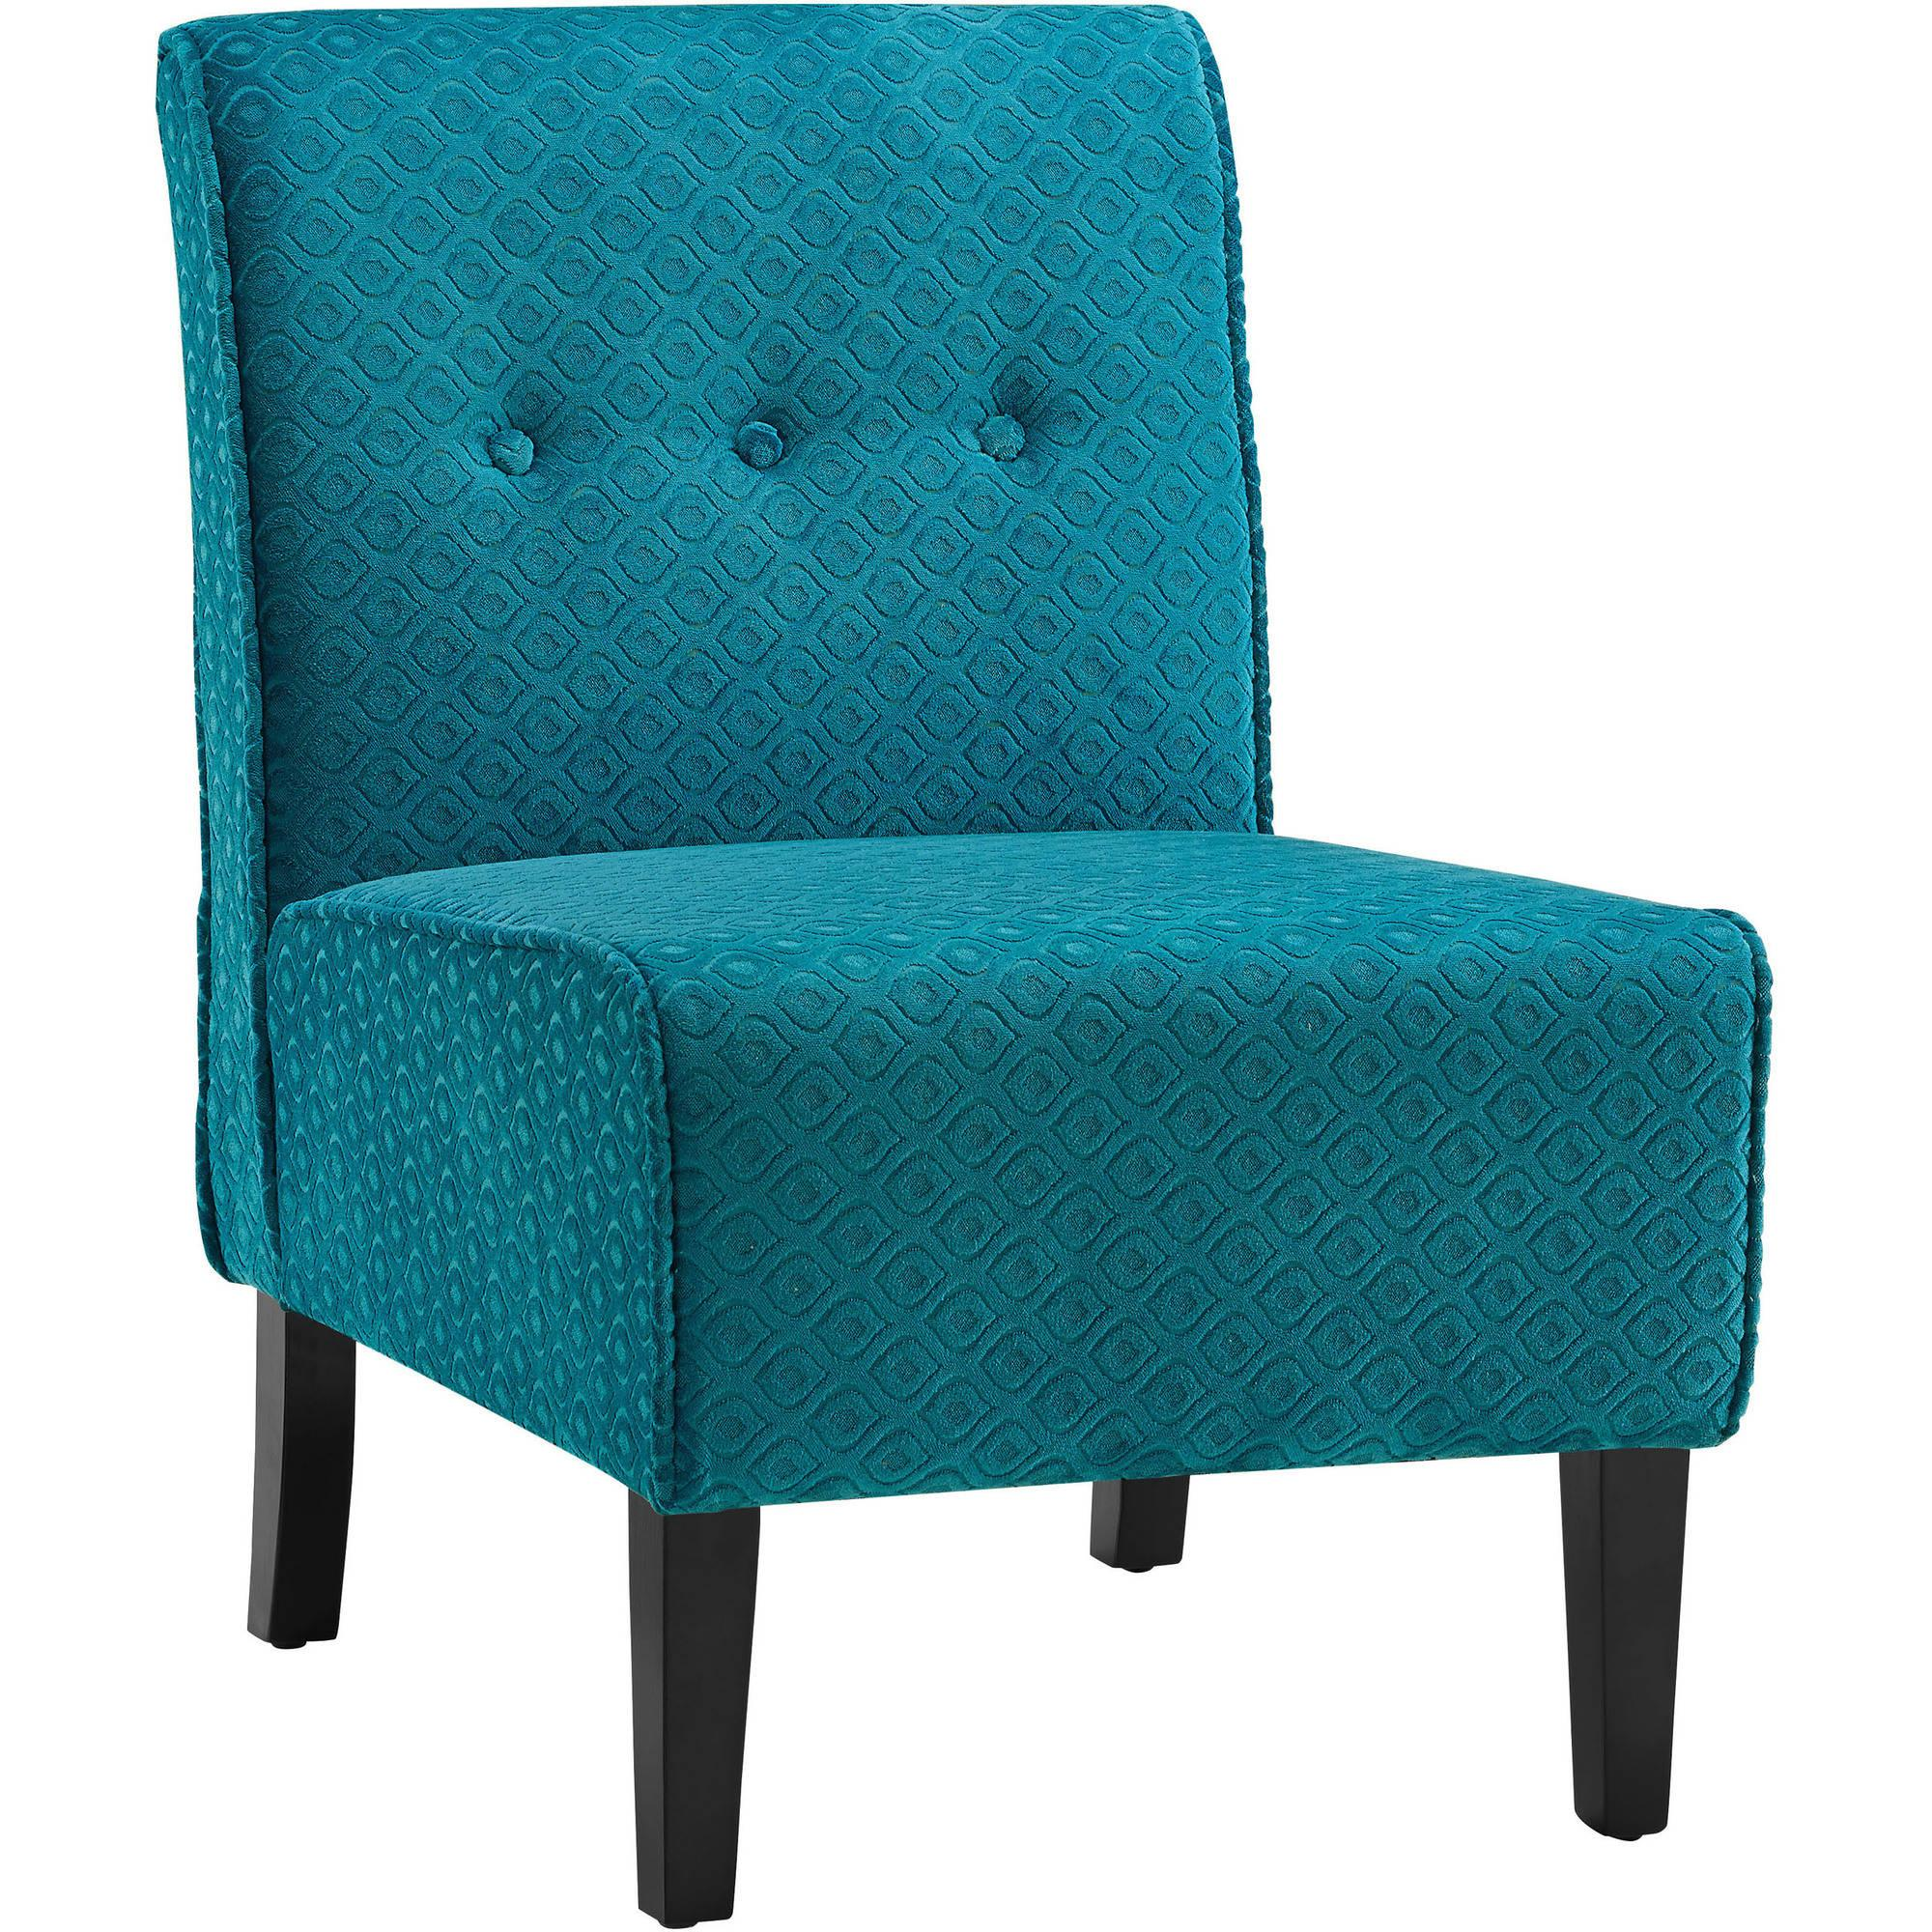 Teal Chair Coco Teal Blue Accent Chair Everything Turquoise